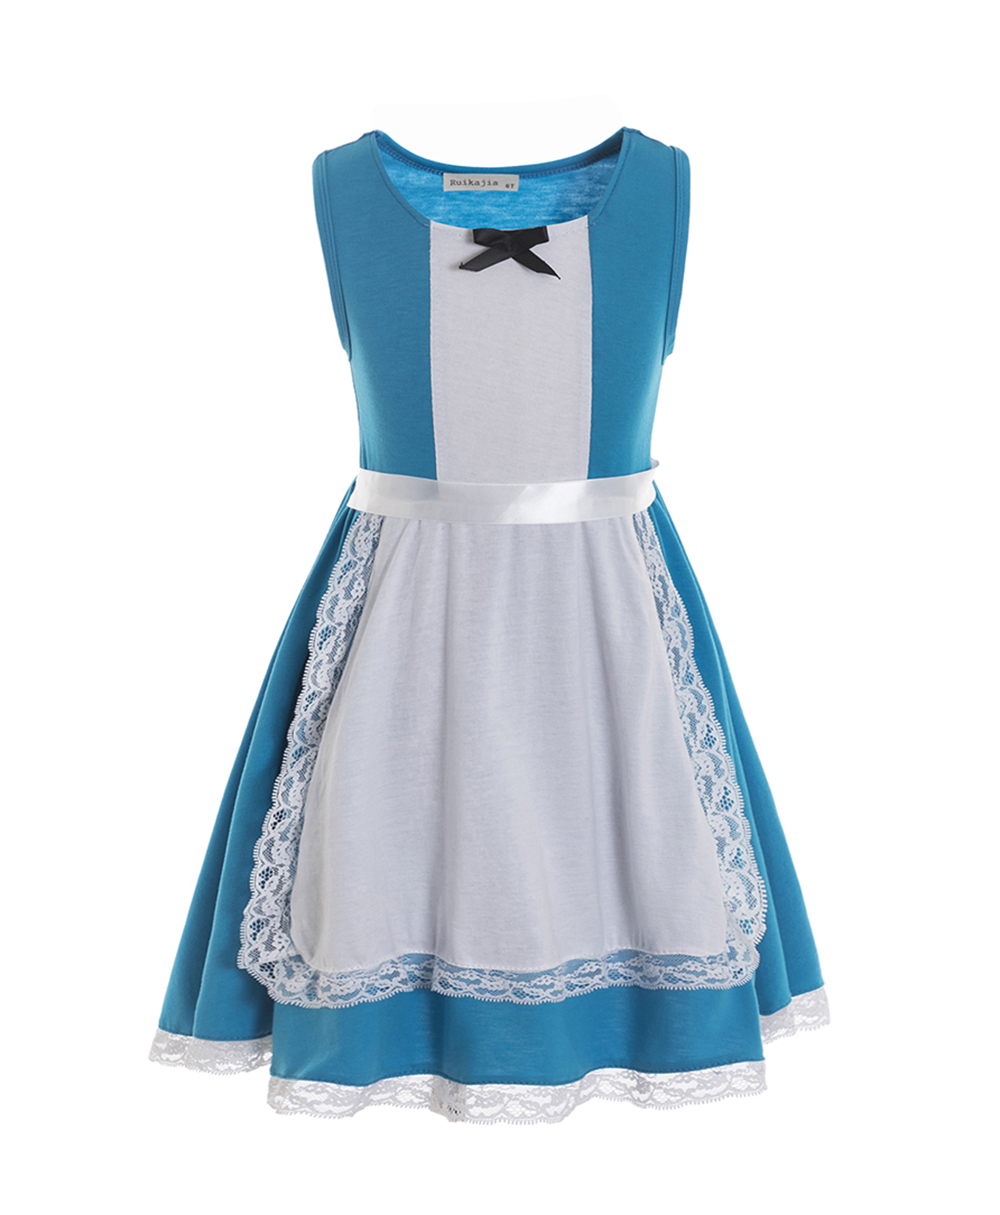 Kids princess dresses for girls 8 to 10 years girls princess dress adult princess dress sofia princess dress medieval dreas 5